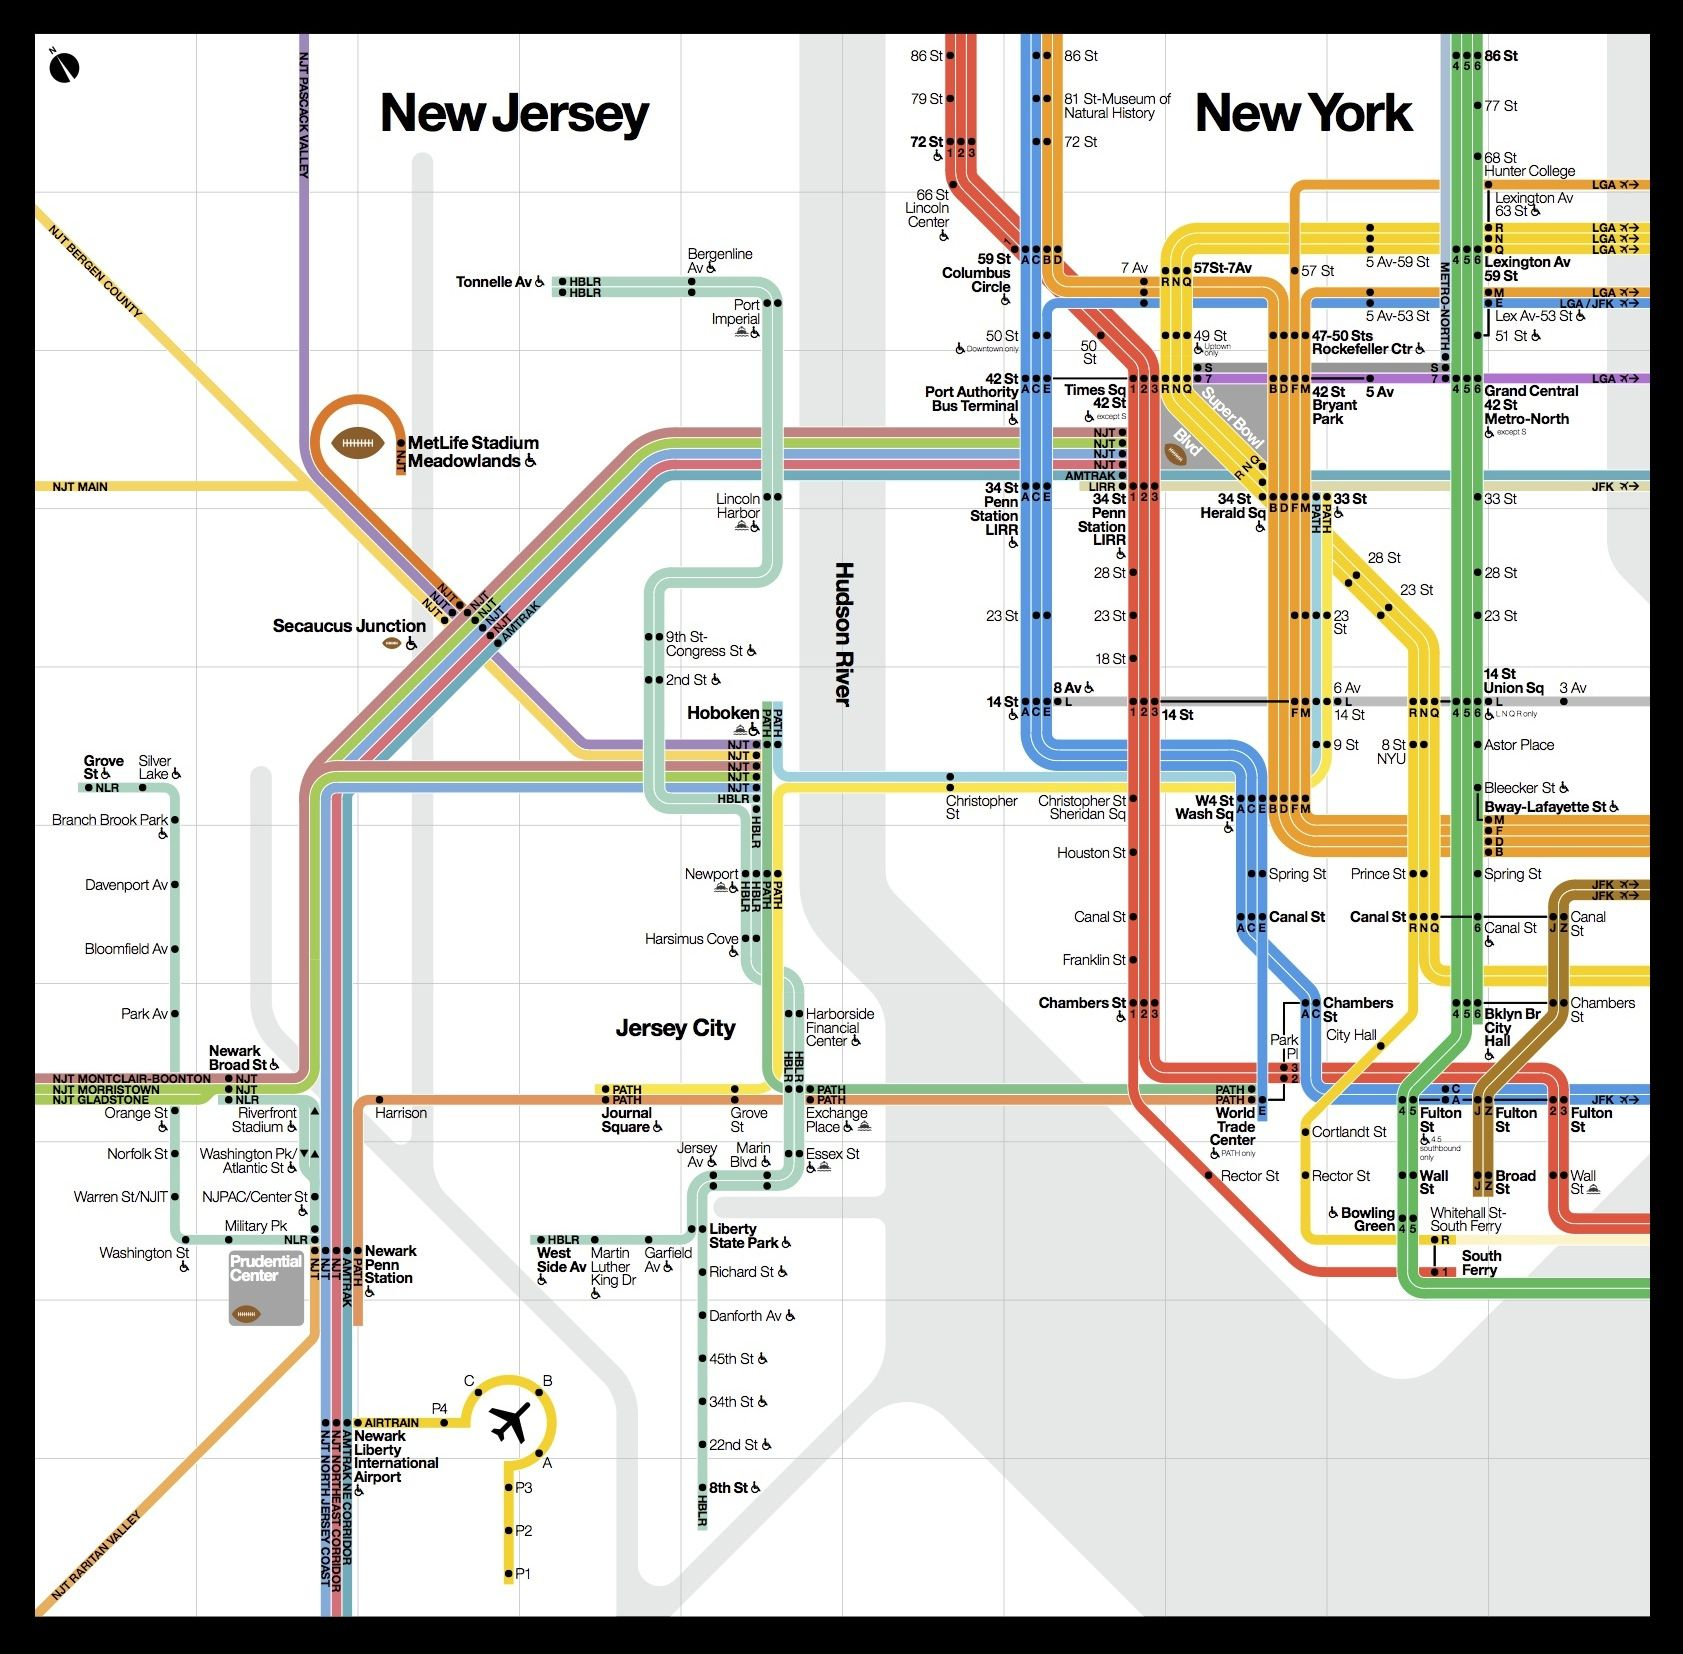 New York City Subway Map 2014.Extended Subway Map Done In The Vignelli Style For The 2014 Superbowl Showing The Nearby Nj Commuter Lines And Path Subway Map Nyc Subway Map Transit Map